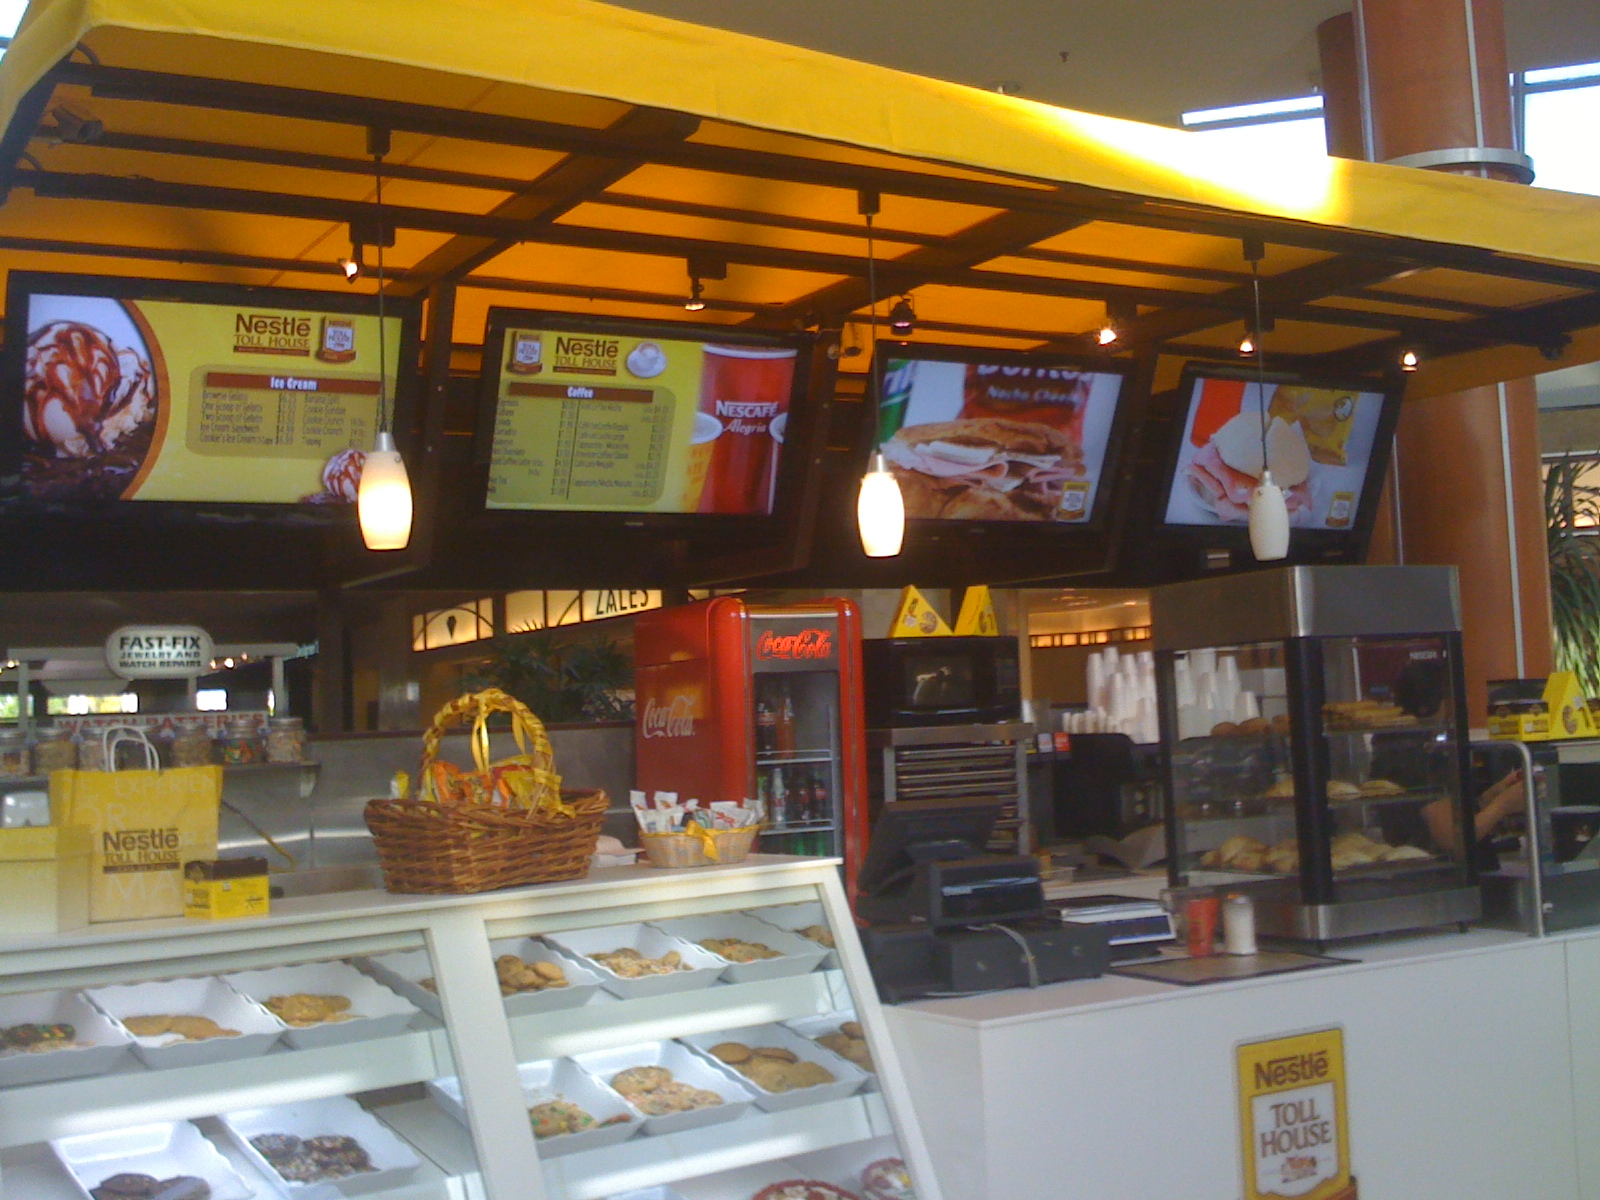 Nestle Toll House Miami